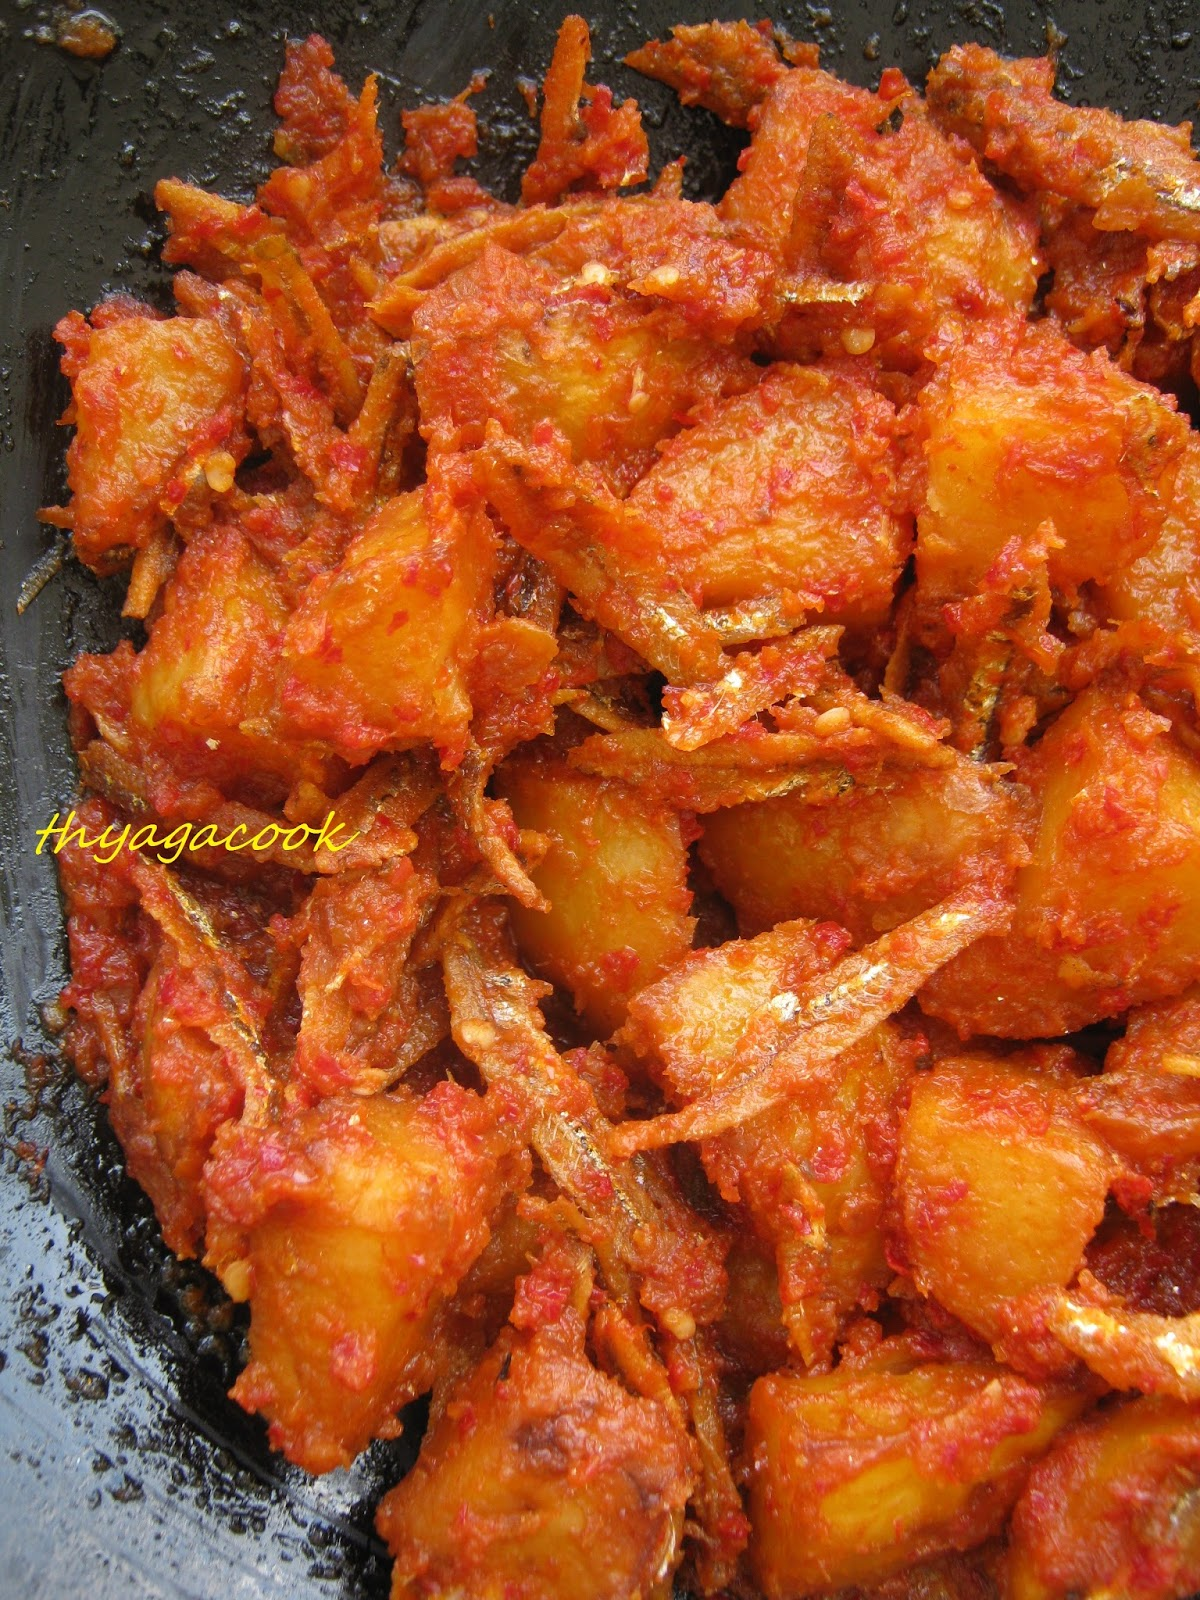 Kari leafs malaysian flavours anchovies and potatoes sambal wednesday july 22 2015 forumfinder Images